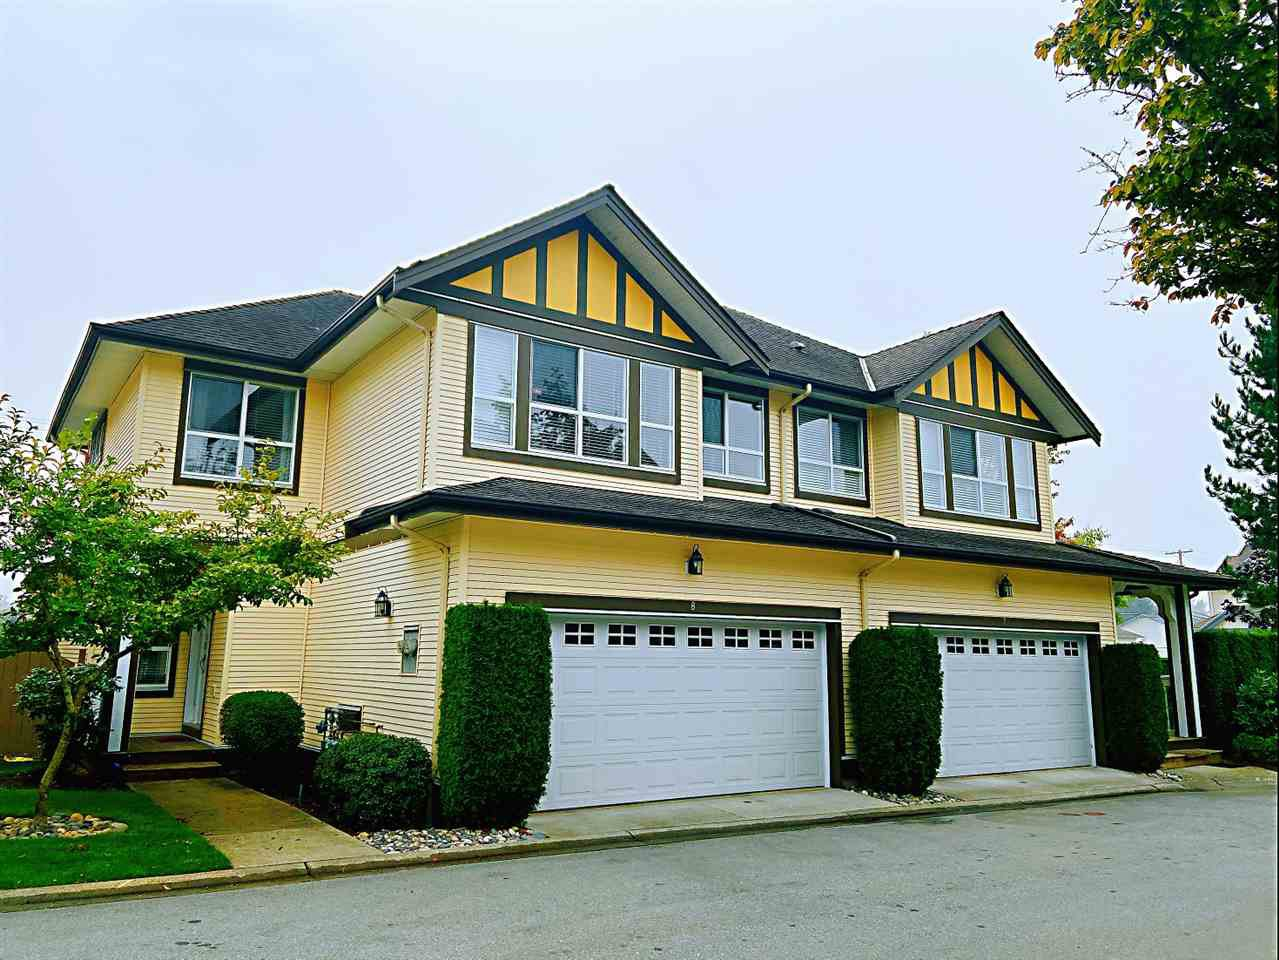 Main Photo: 8 8250 158 Street in Surrey: Fleetwood Tynehead Townhouse for sale : MLS®# R2497169